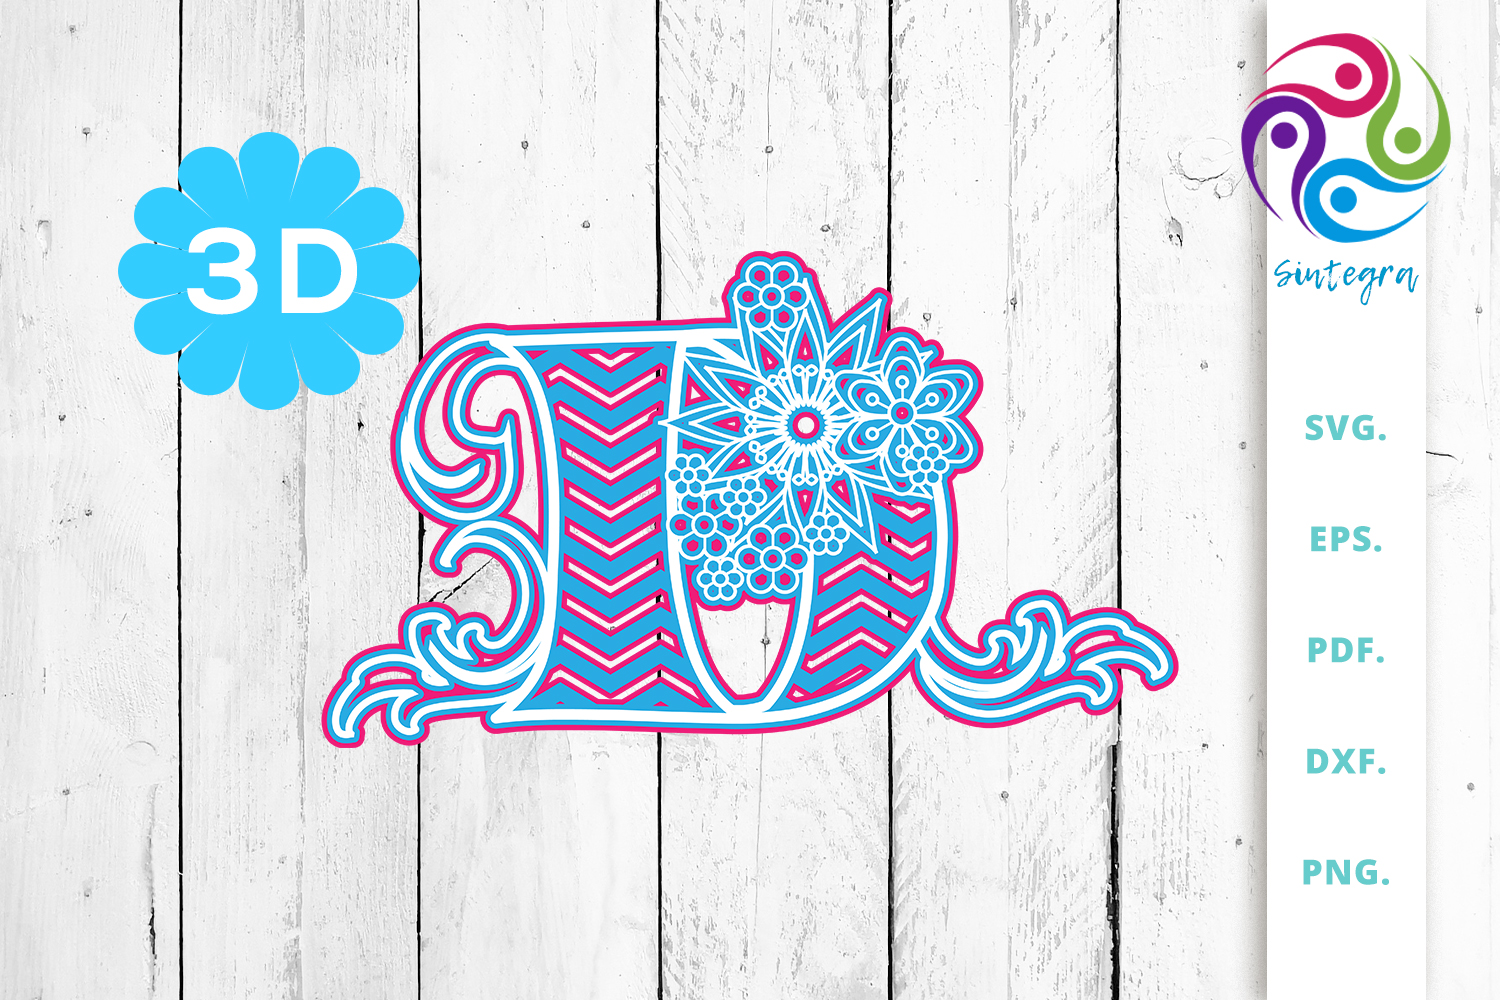 Download Free 3d Multilayer Floral Chevron Letter D Graphic By Sintegra for Cricut Explore, Silhouette and other cutting machines.